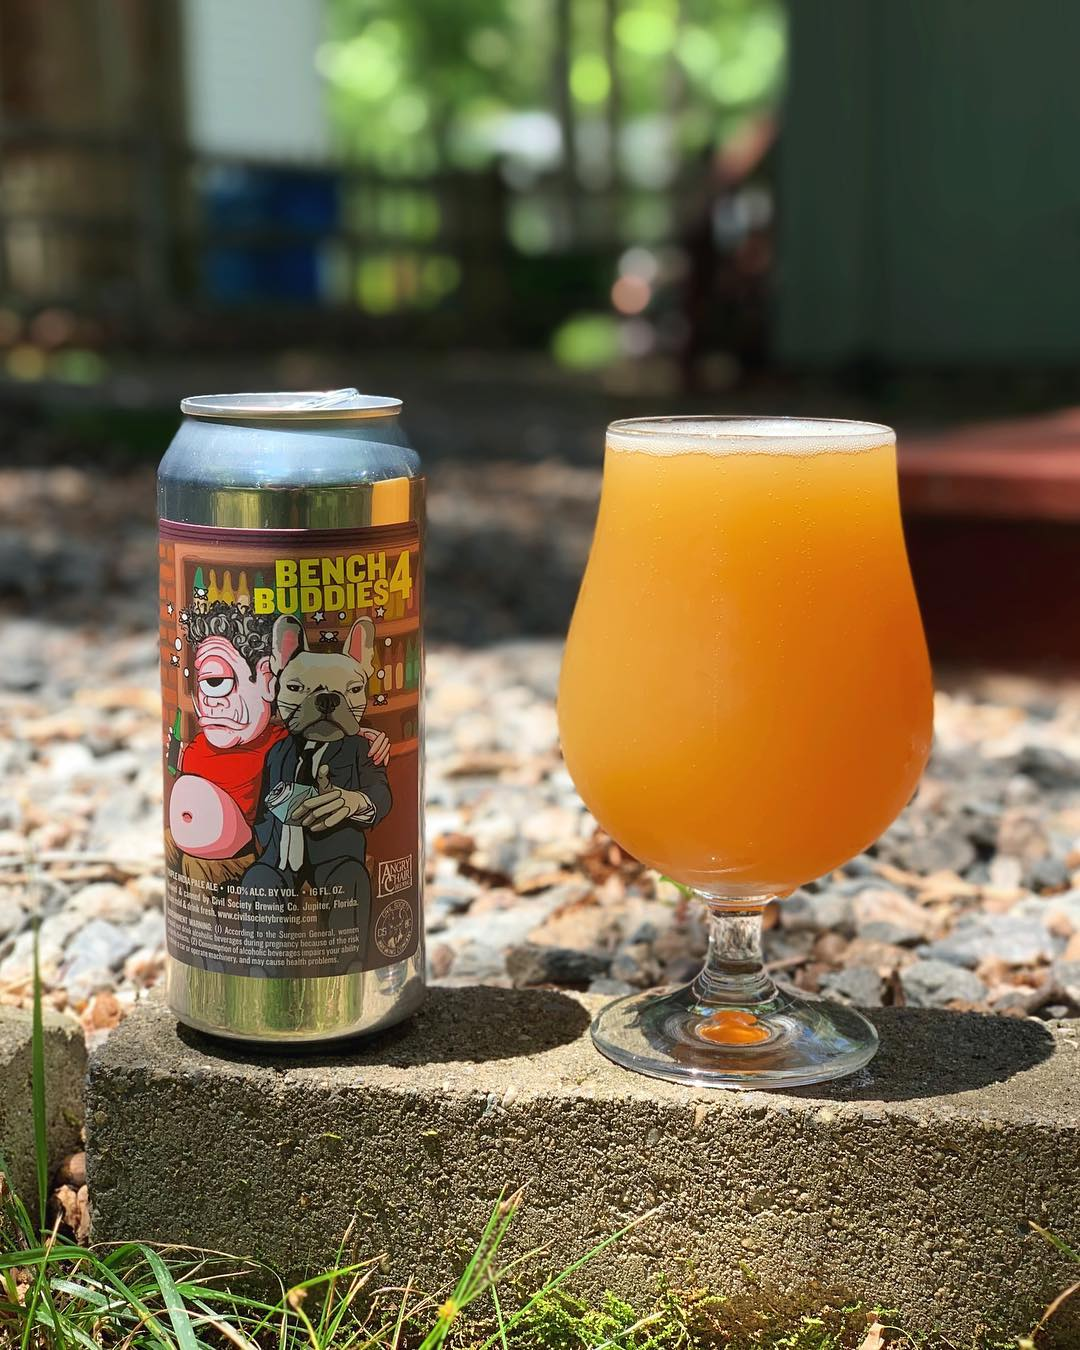 Bench Buddies 4 Triple IPA poured into a unique glass with an outdoor setting. The beer is a hazy, golden hue and the beer can has unique artwork.